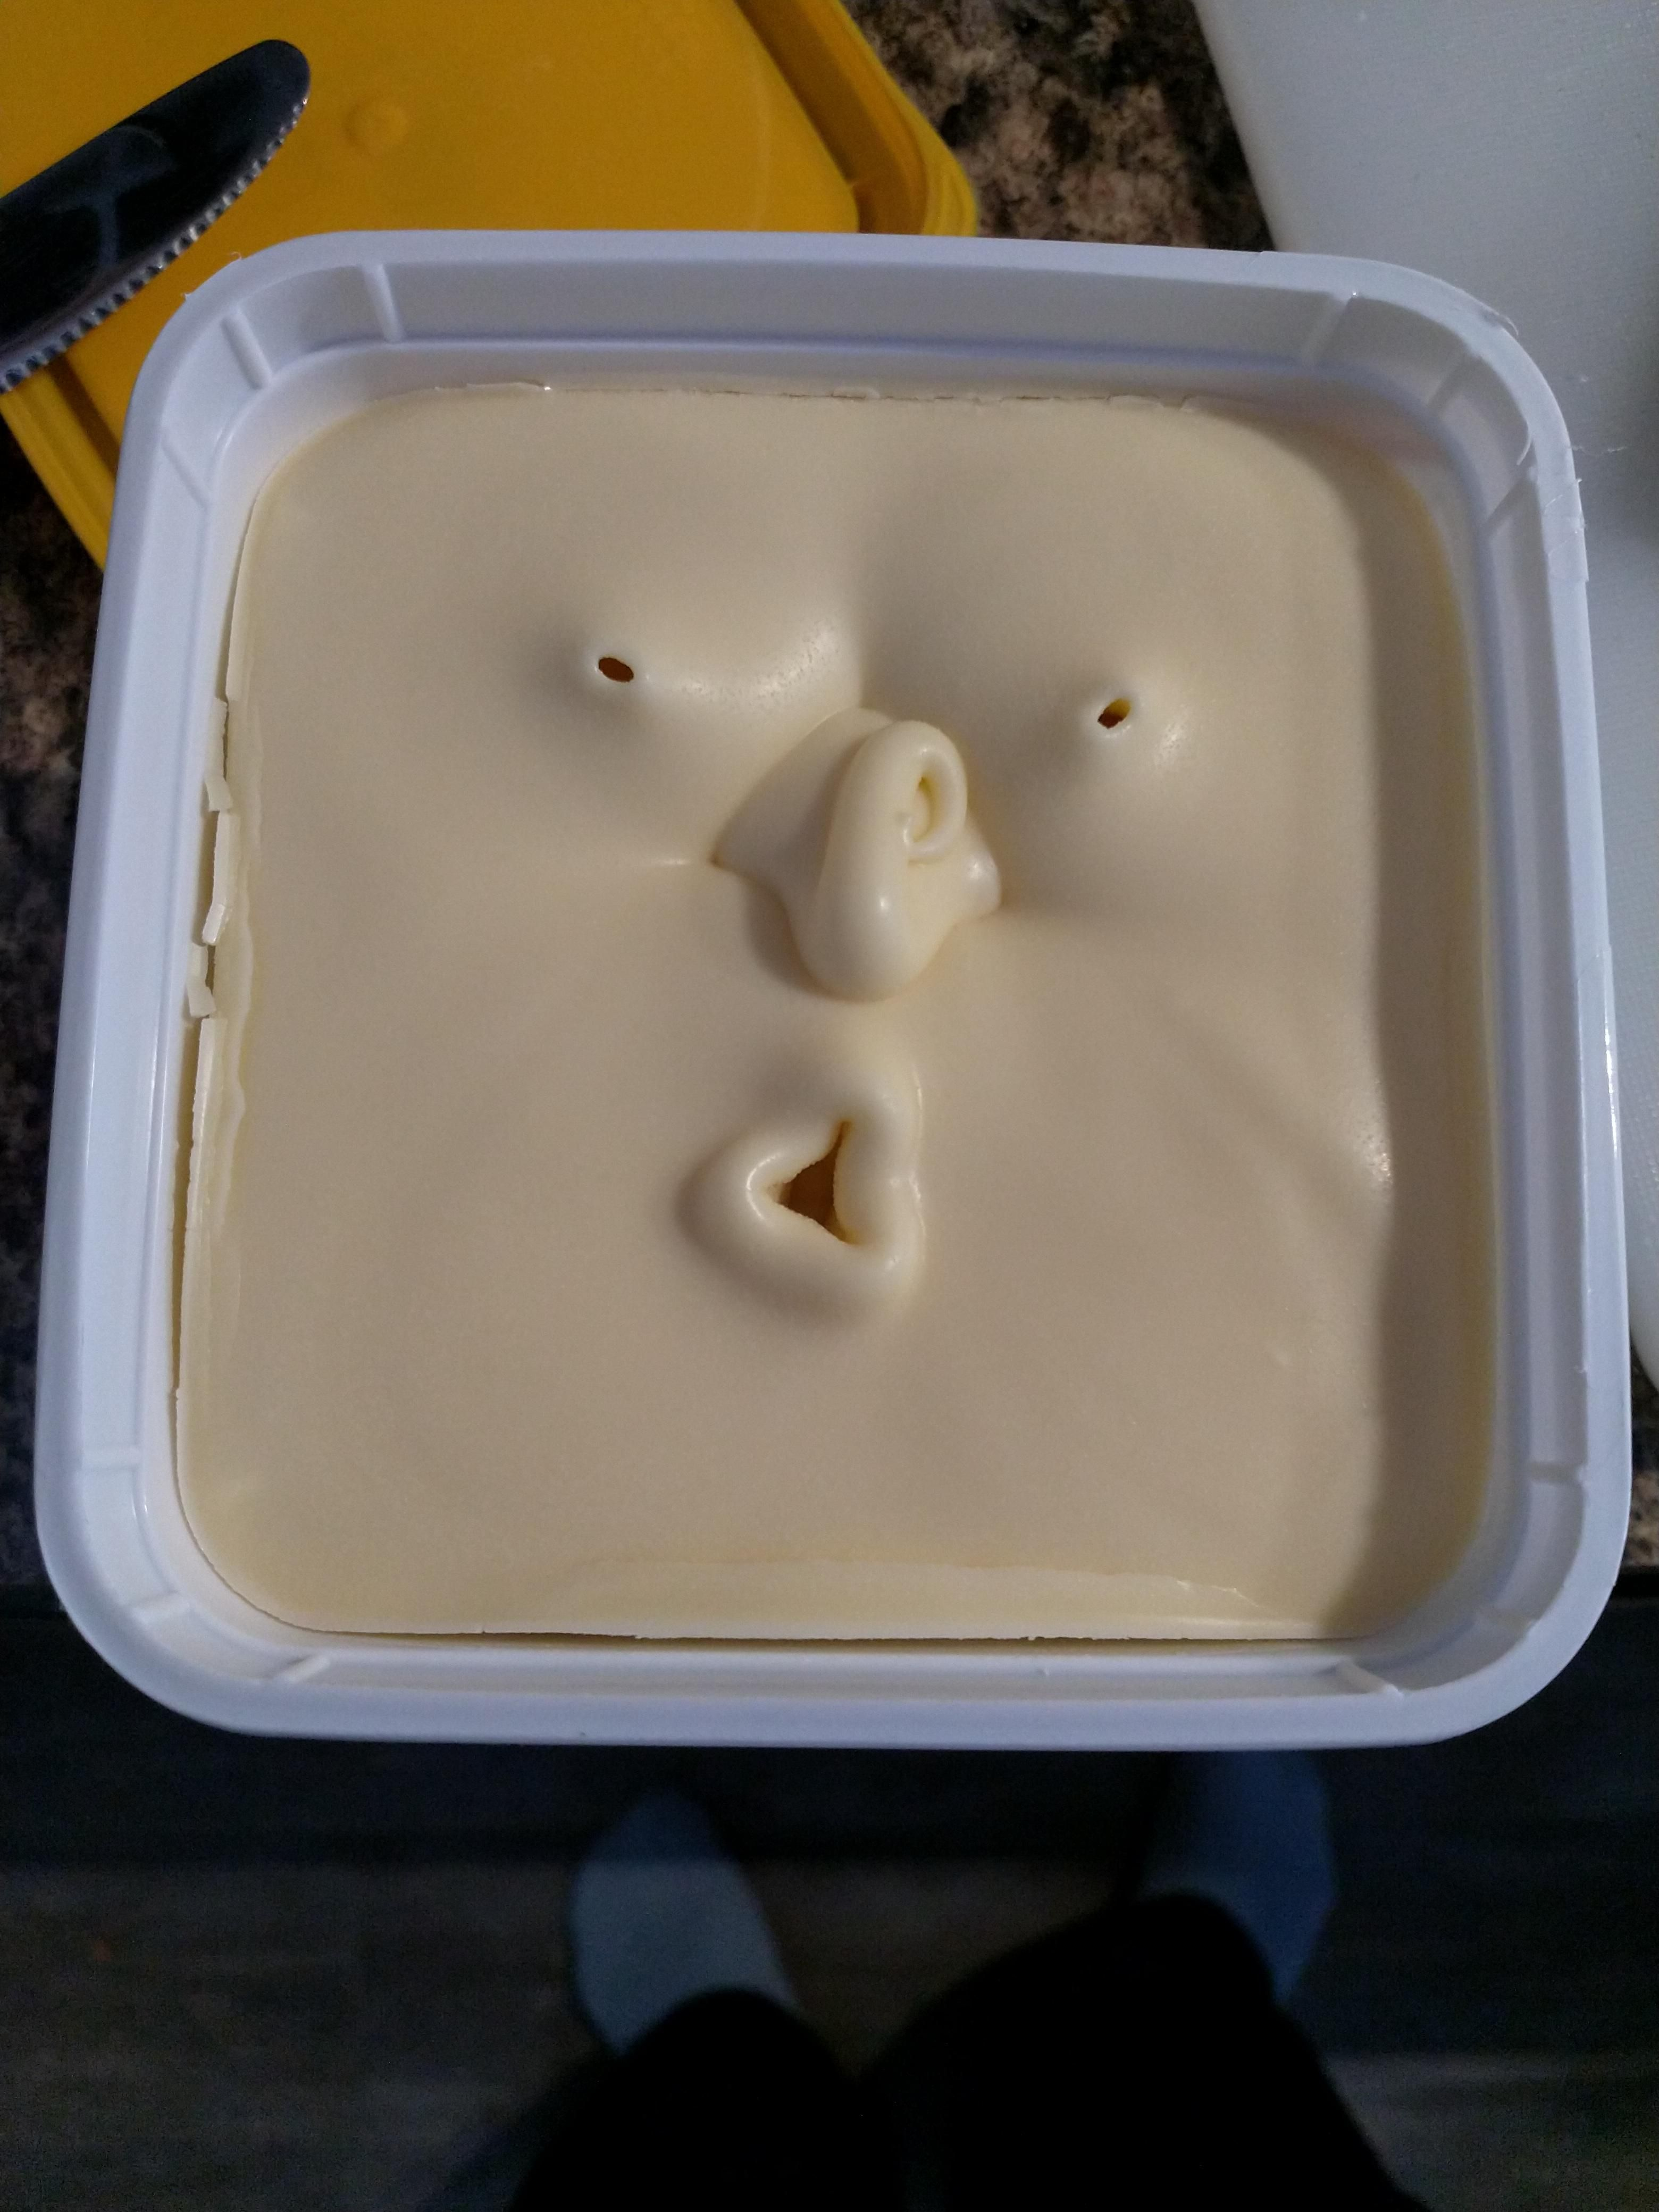 My Butter on seeing my ugly face first thing in the morning.